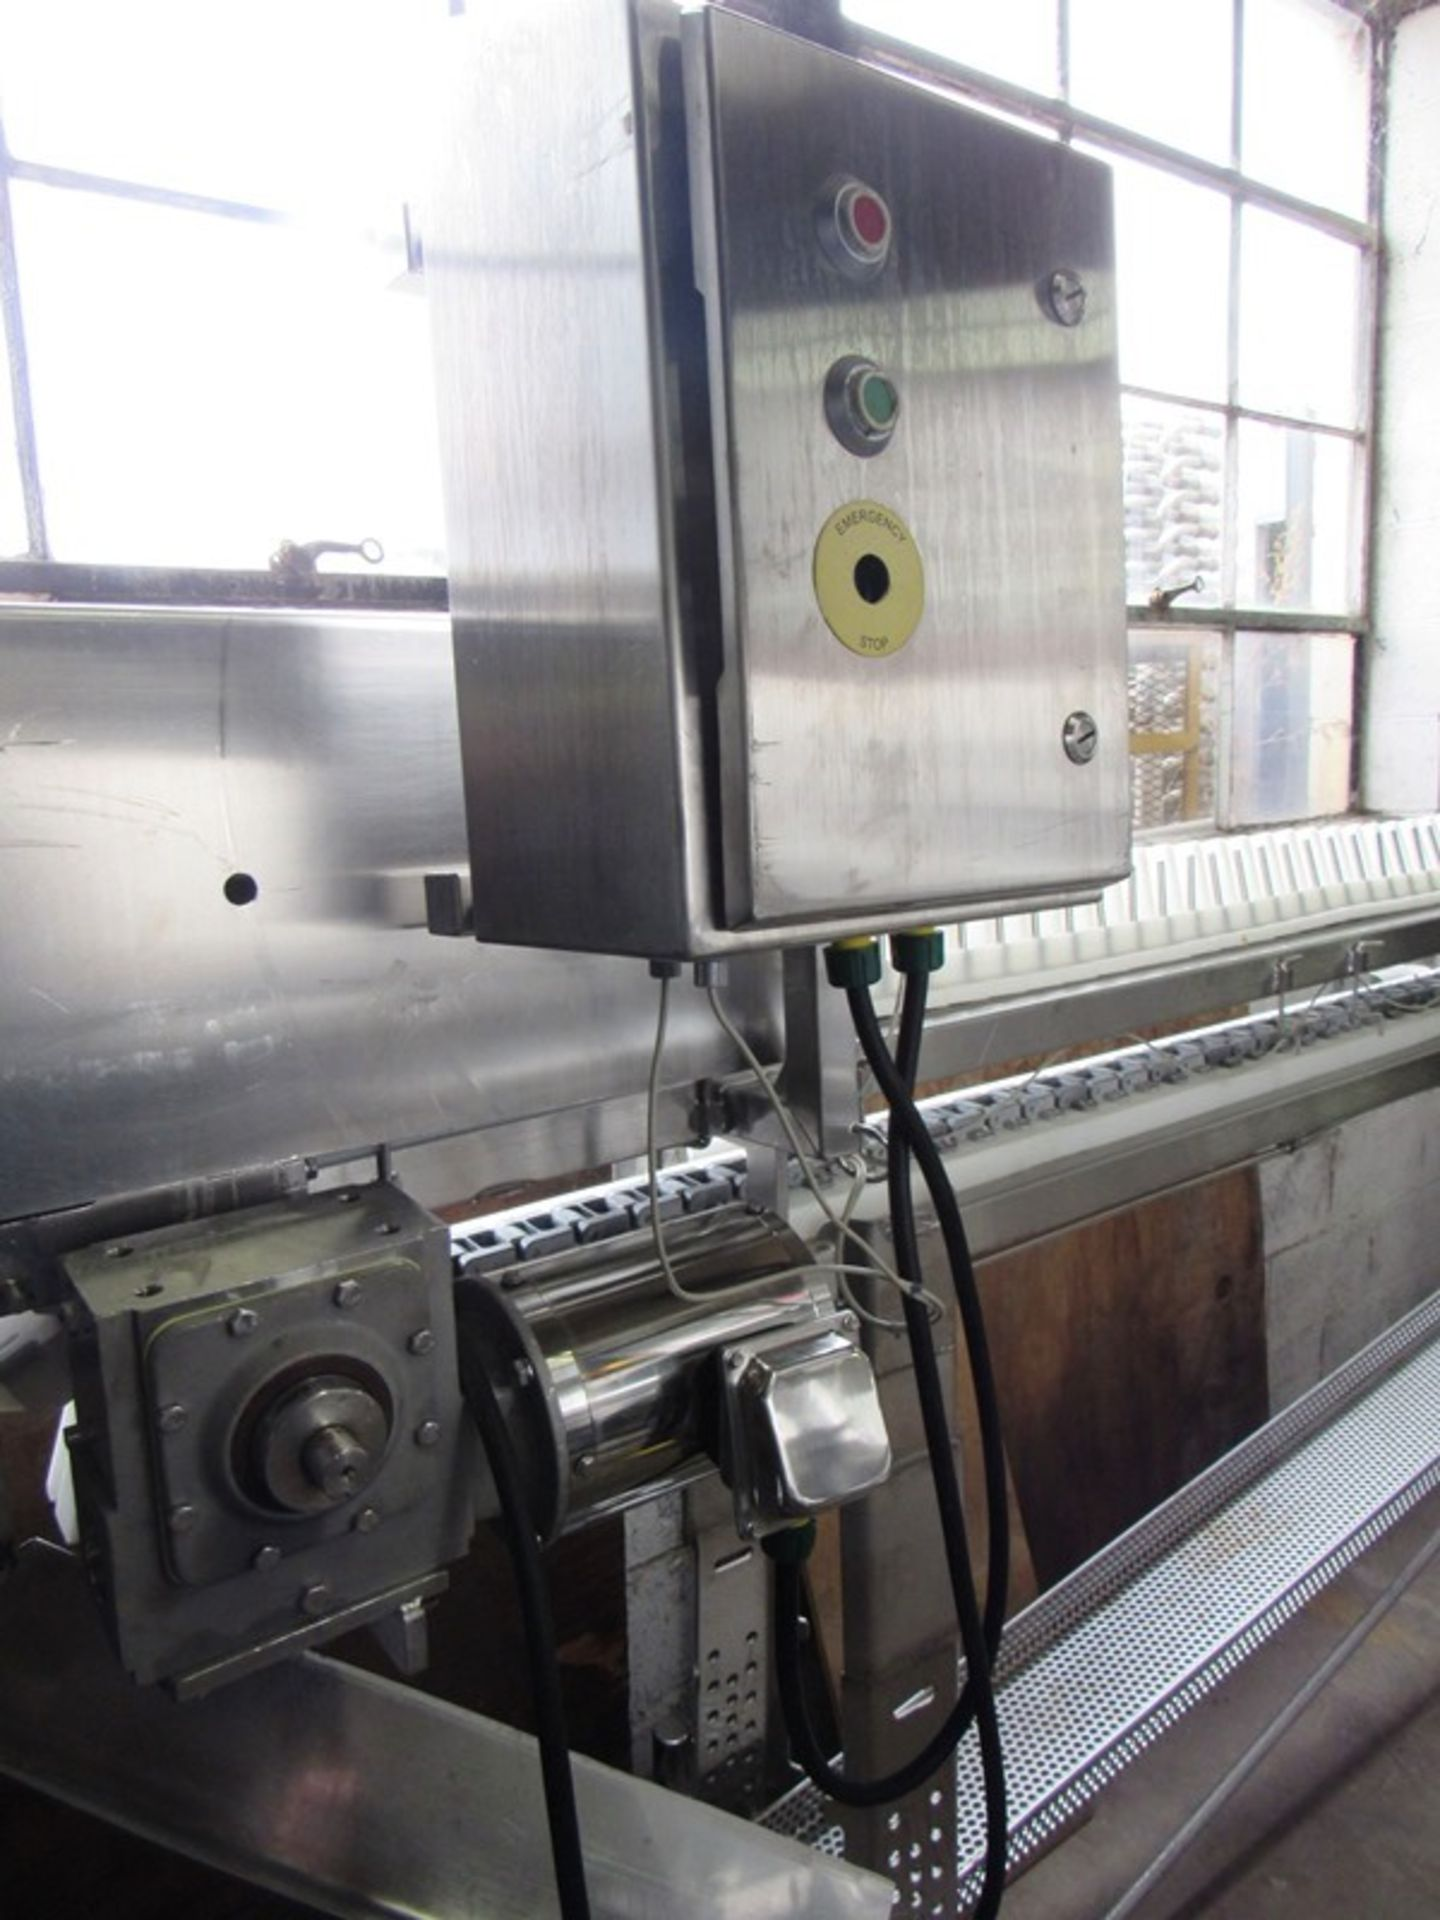 Lot 51 - Prime Equipment Group Mdl. CWS-1 Chicken Wing Segmenter